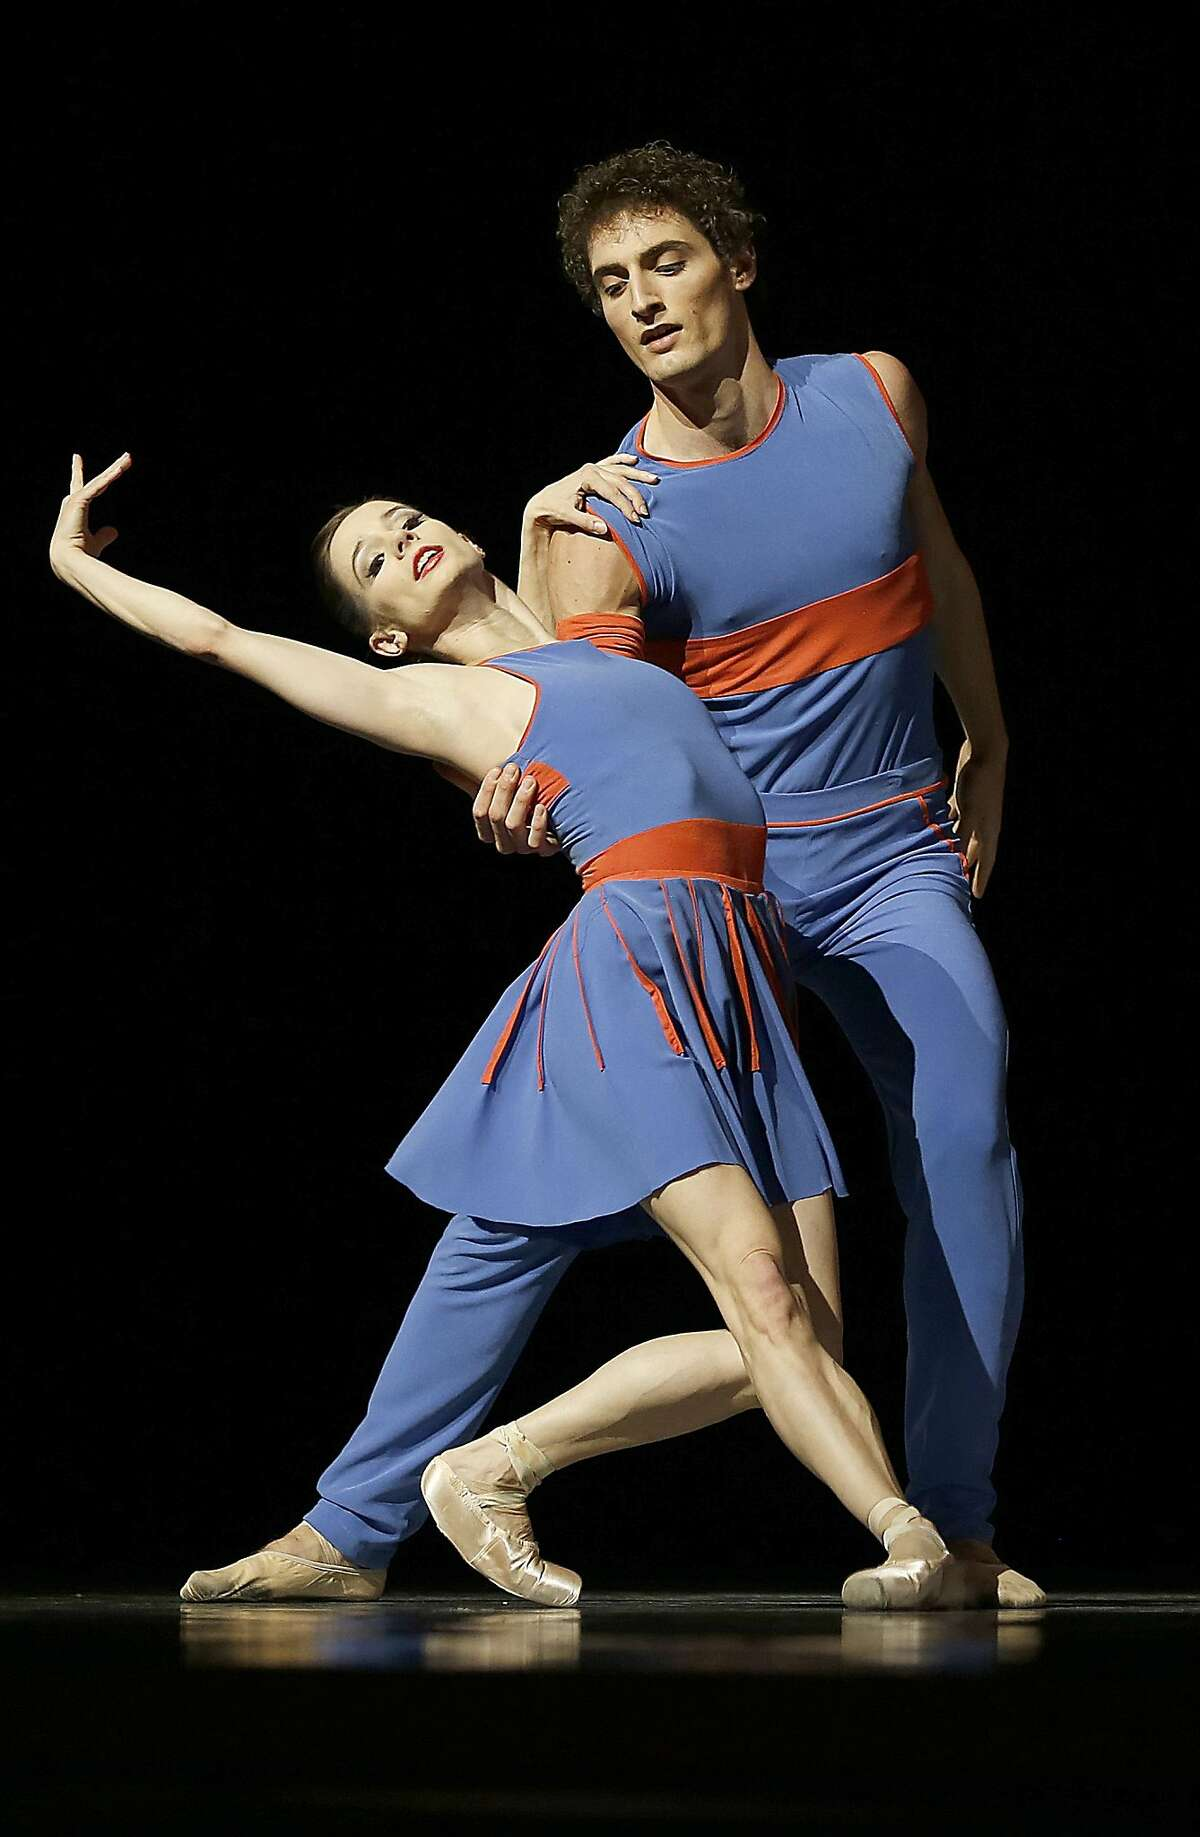 Maria Kochetkova and Carlo Di Lanno dance during a dress rehearsal of San Francisco Ballet's season opening gala with world premiere 'The Chairman Dances' choreographed by Benjamin Millepied on Thursday, January 19, 2017, in San Francisco, Calif.